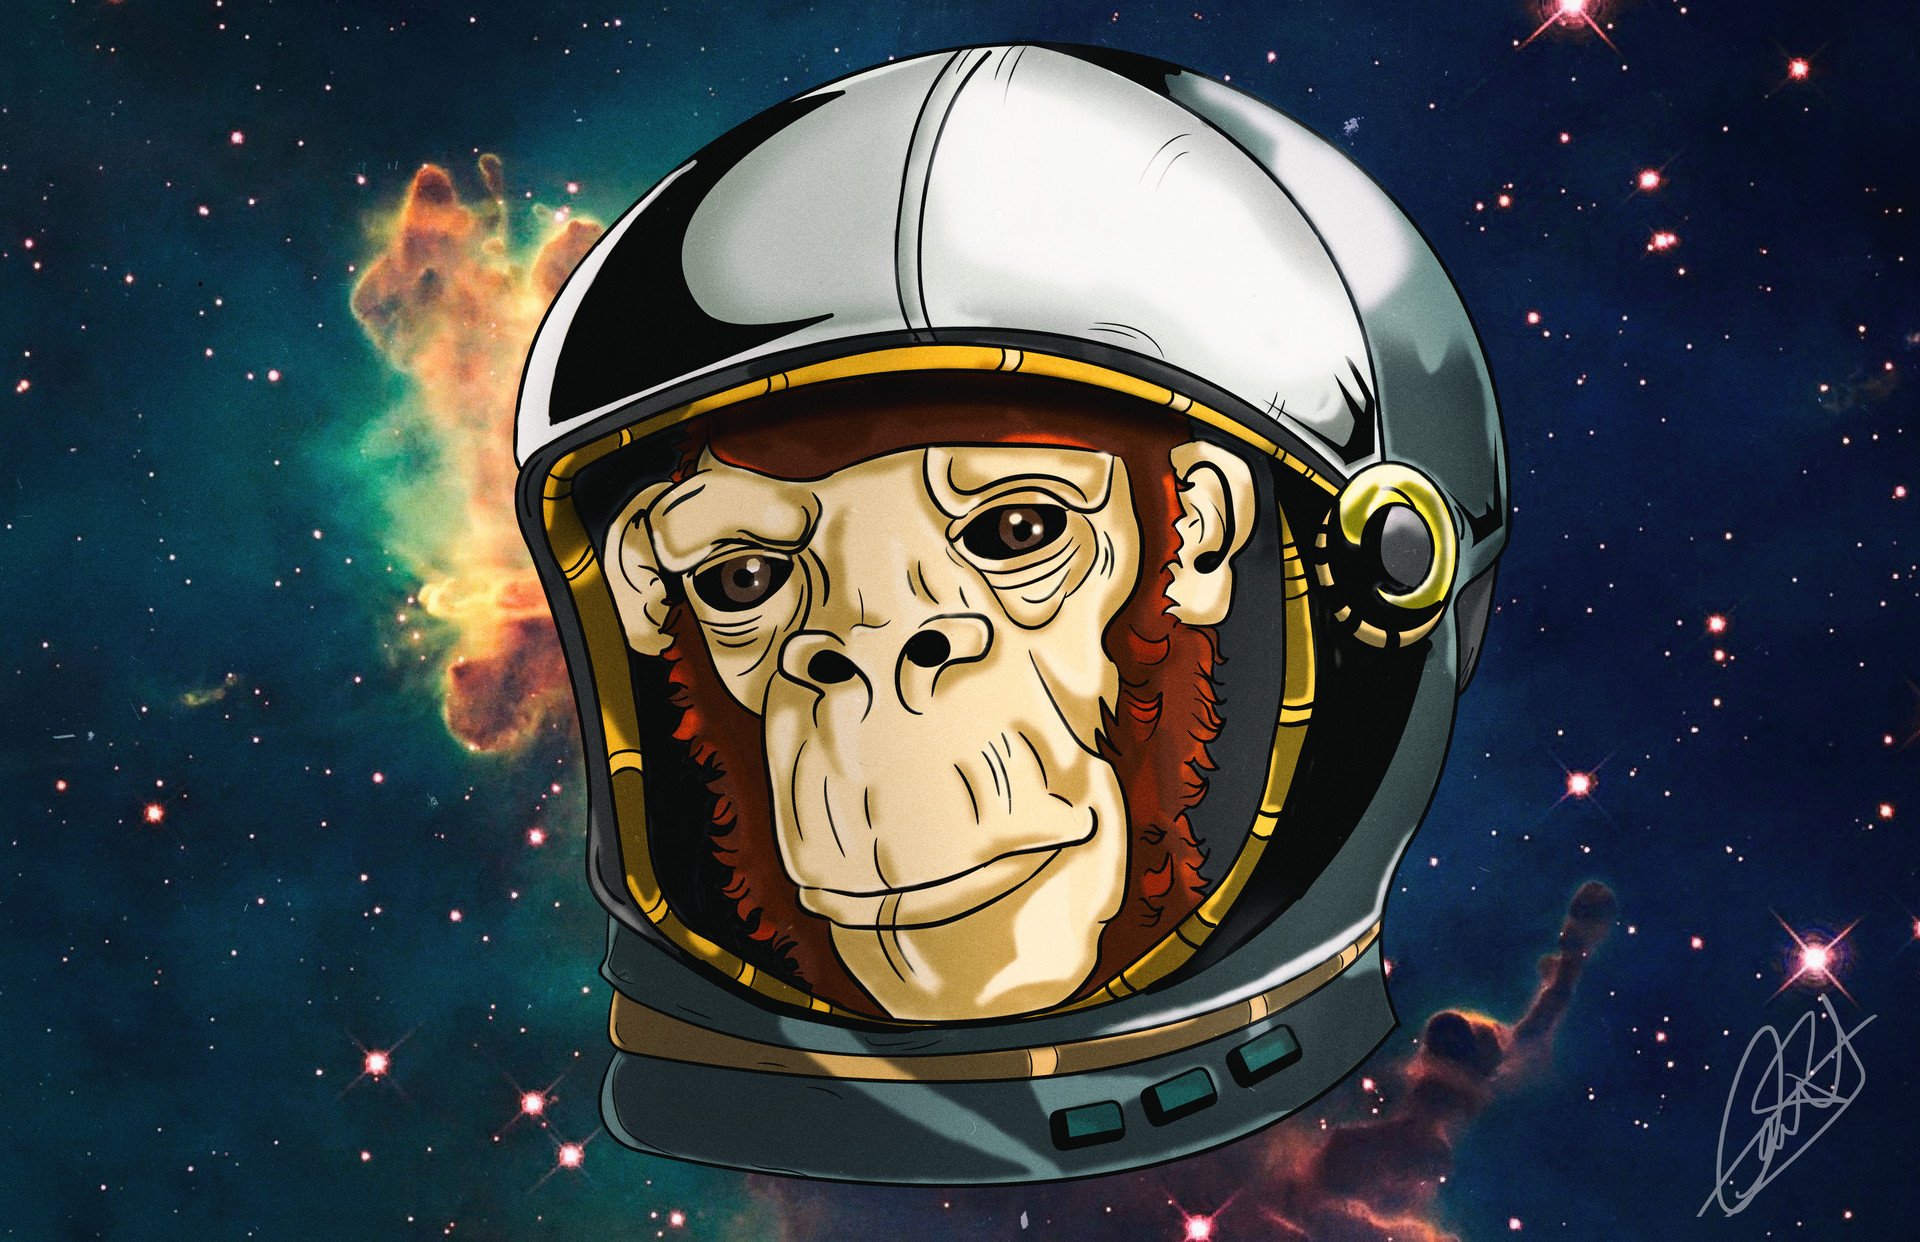 Fan art de space monkey / illustrator, Photoshop 1wjr